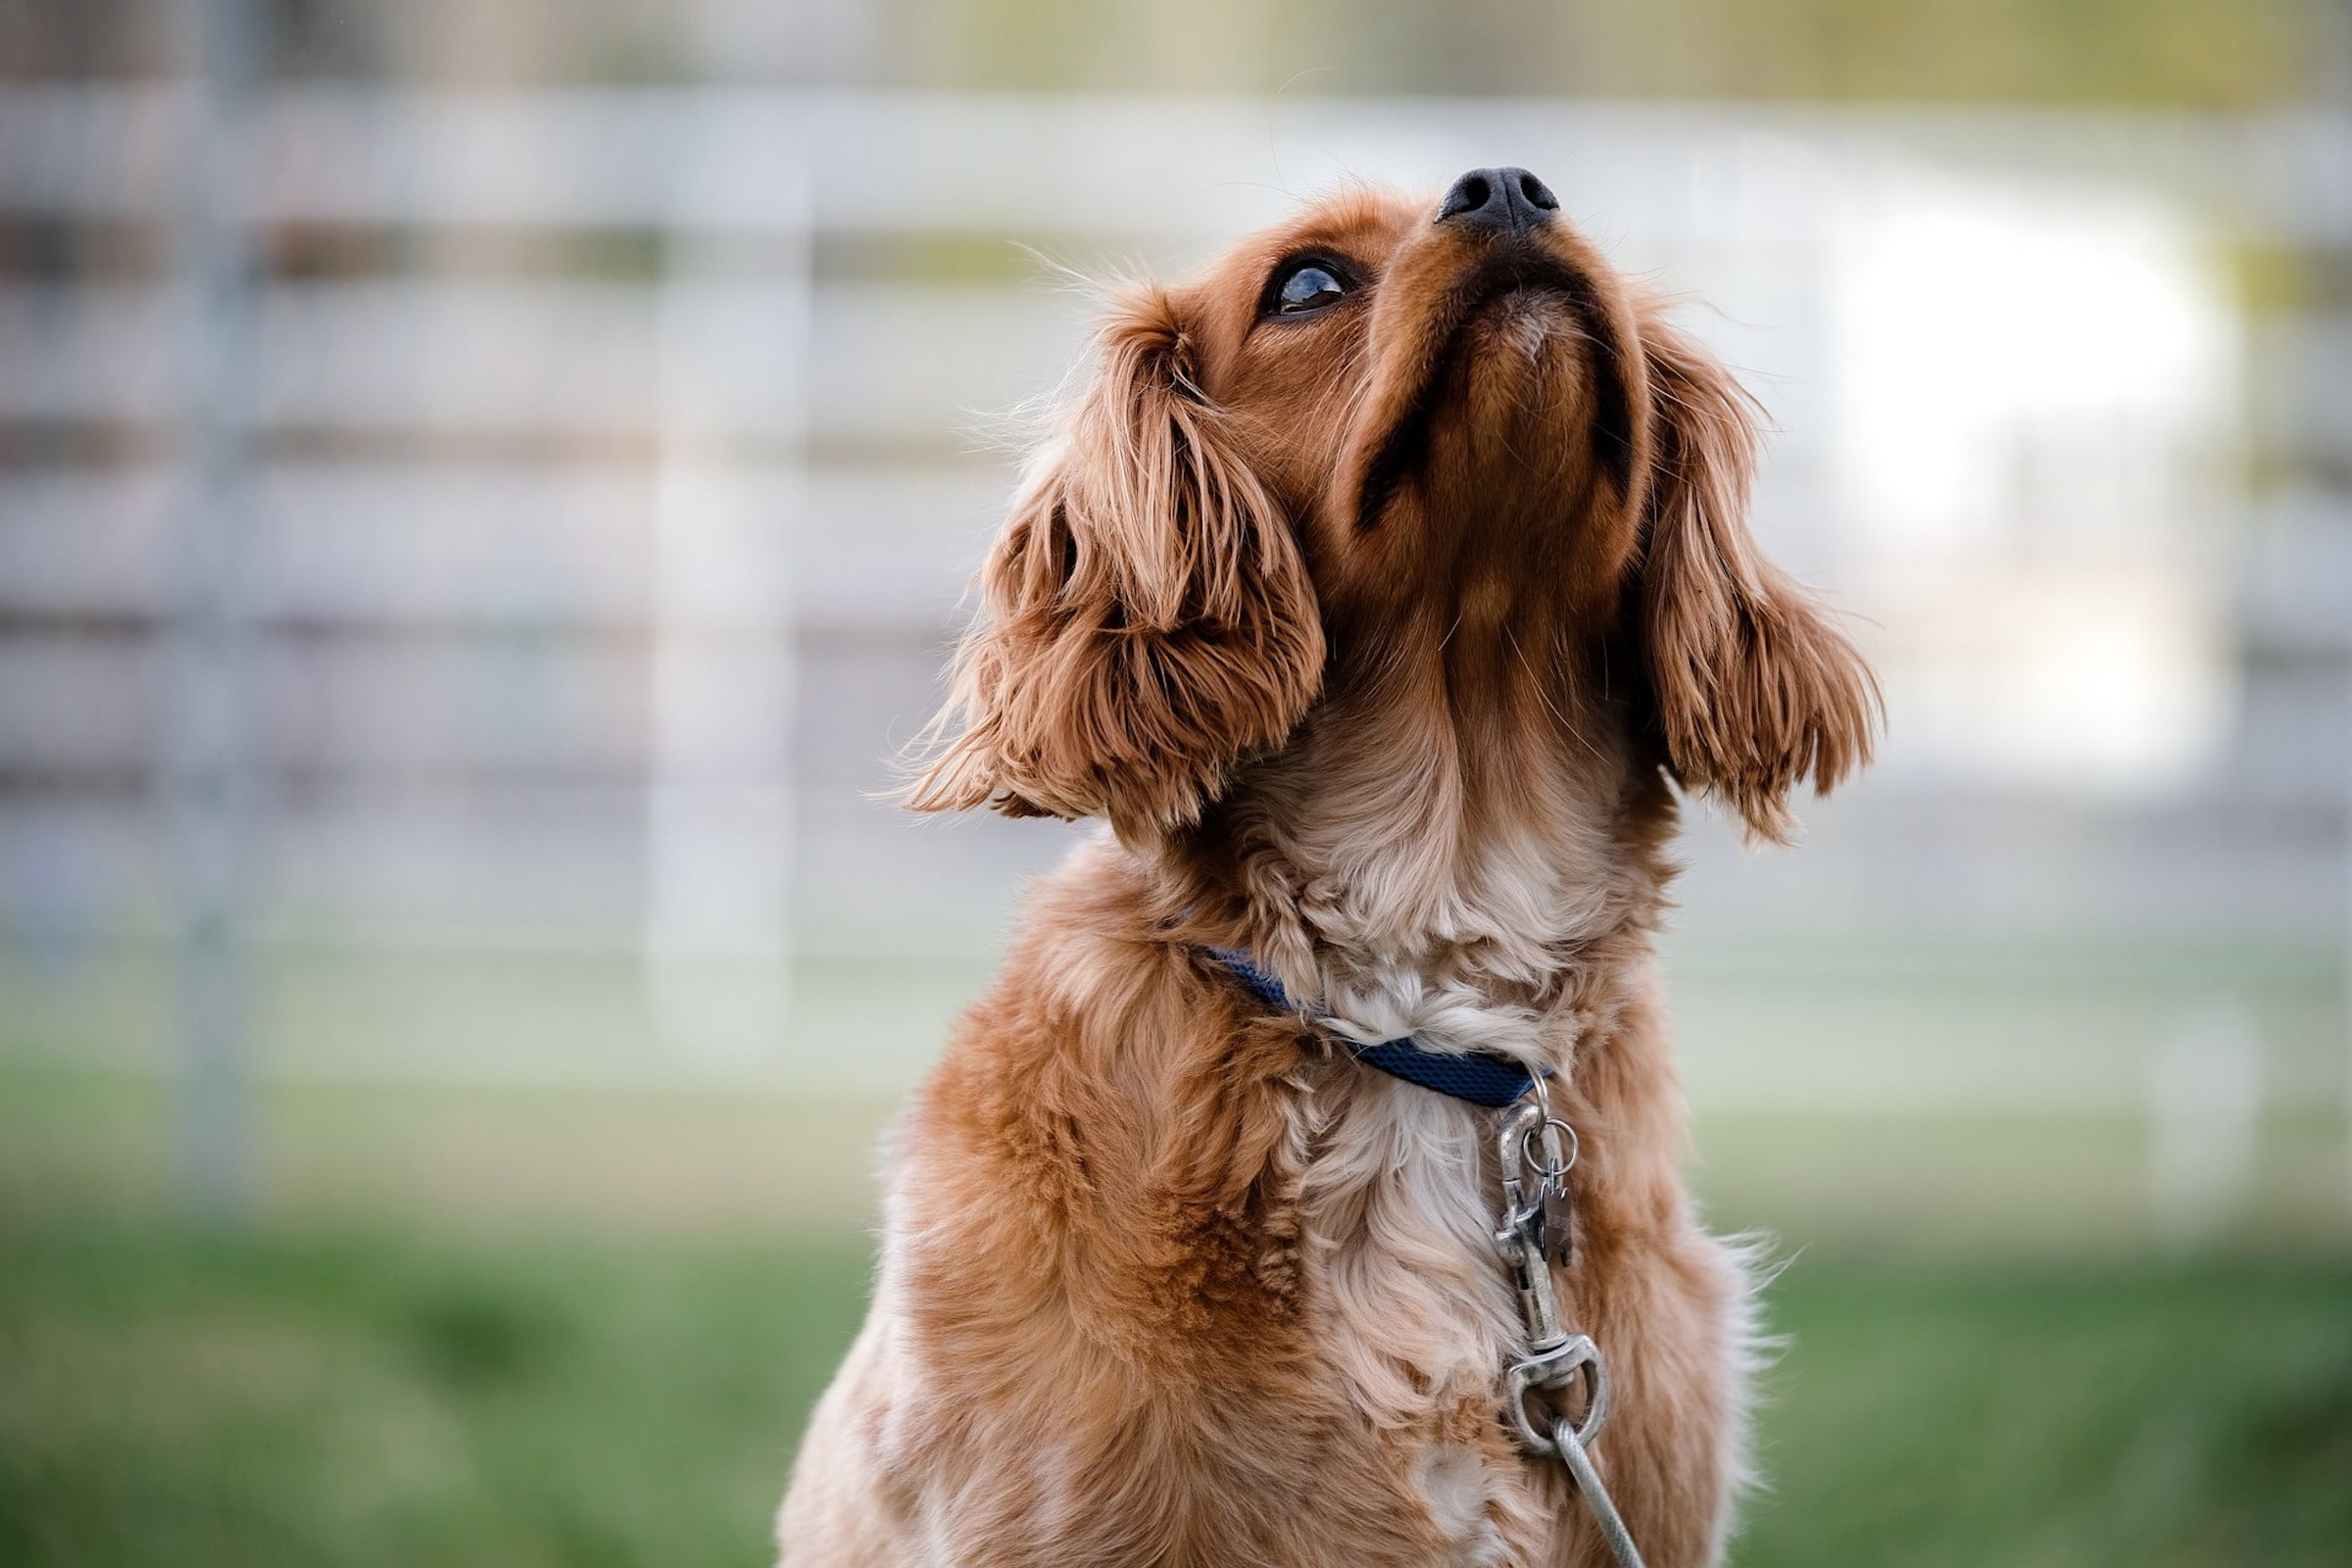 What You Need To Know About Dog Puberty Before It Happens | PawTracks